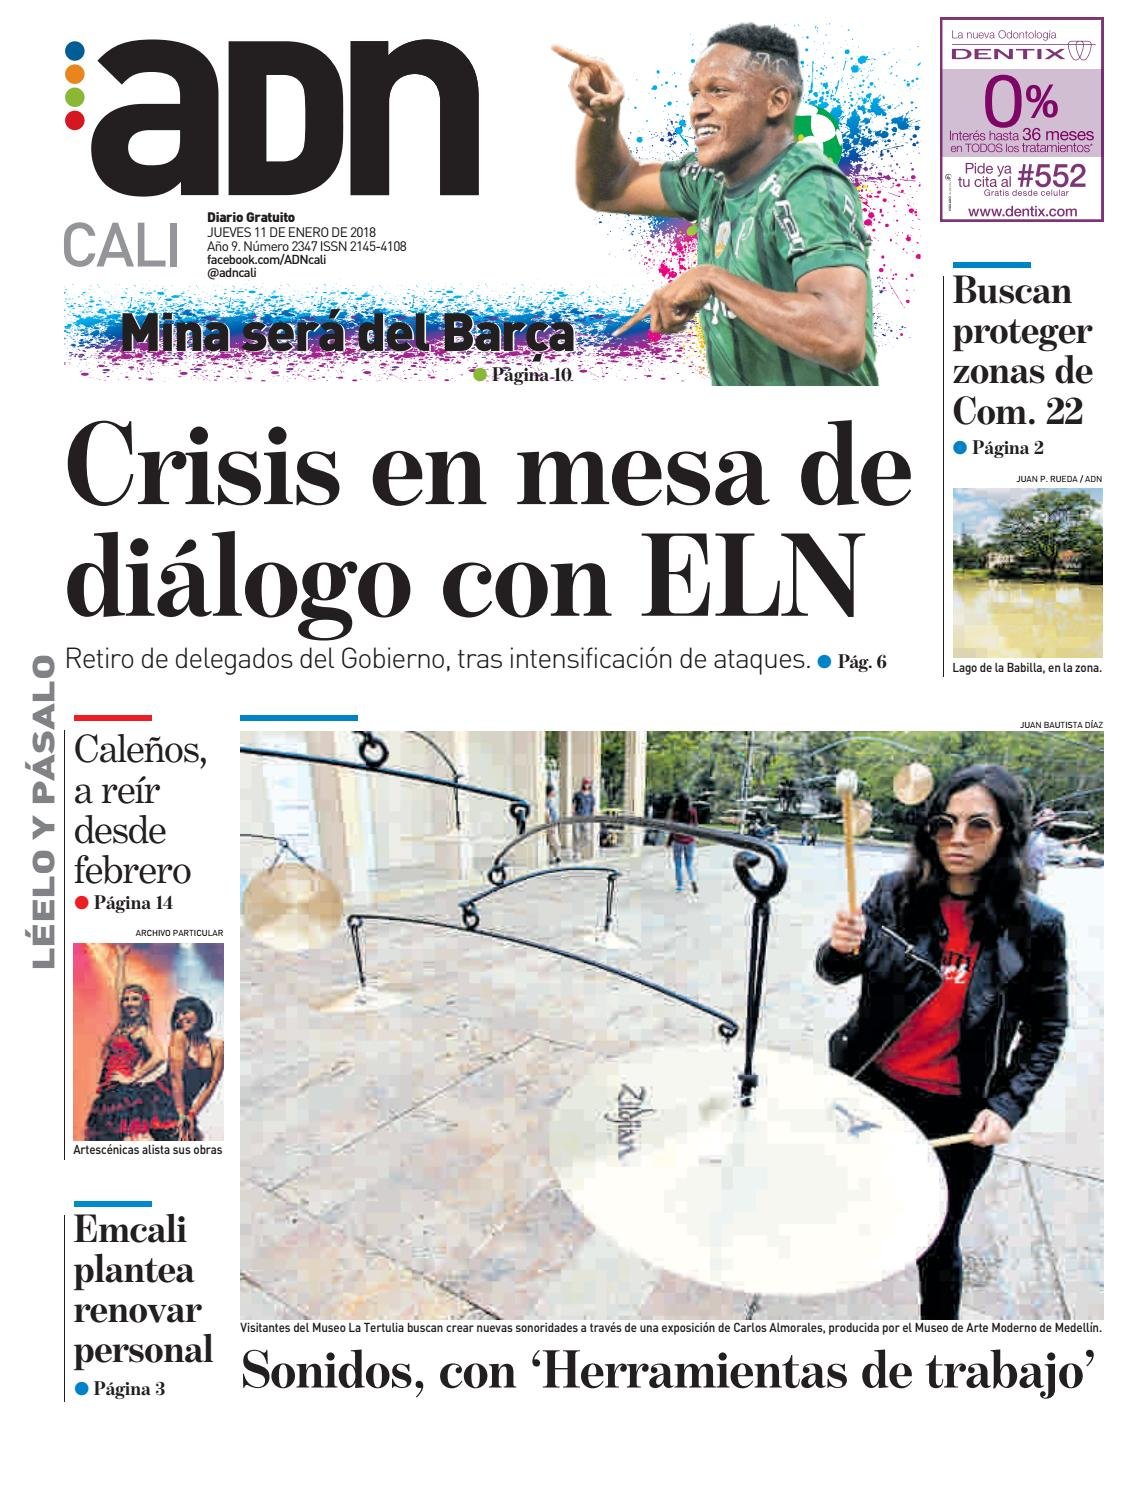 ADN Cali 11 de enero by diarioadn.co - issuu